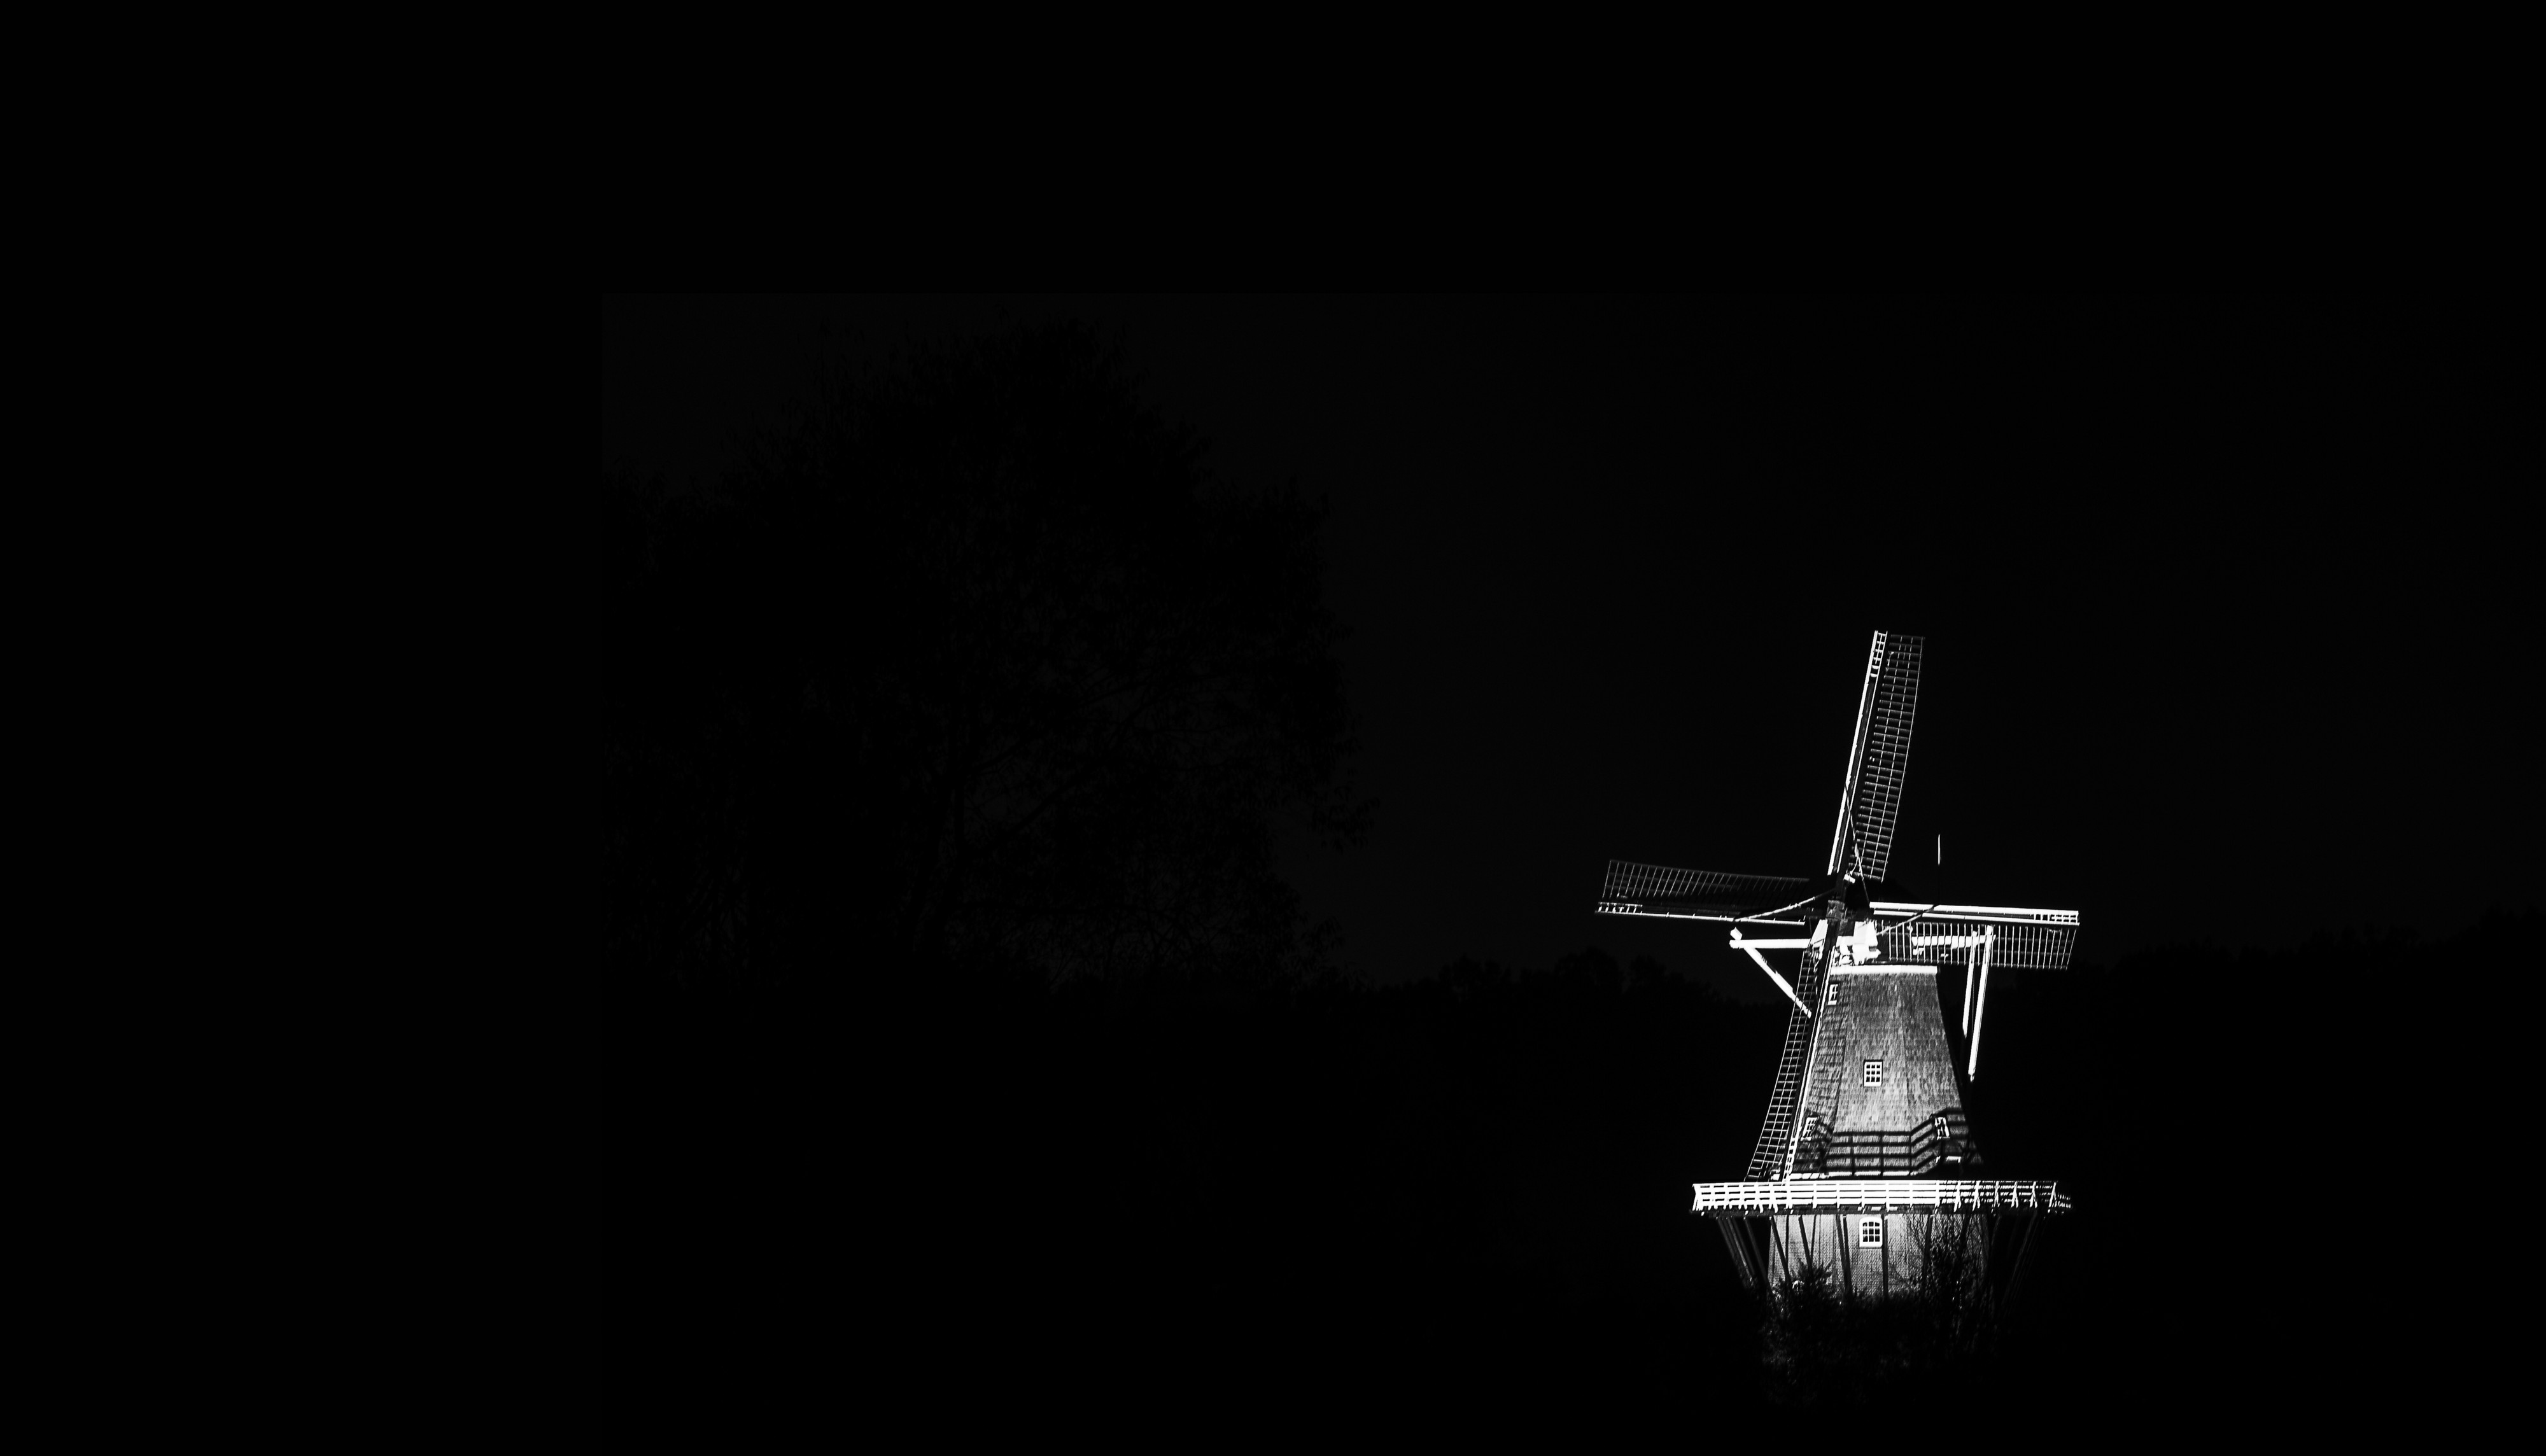 An old-fashioned windmill standing out starkly against a dark background.